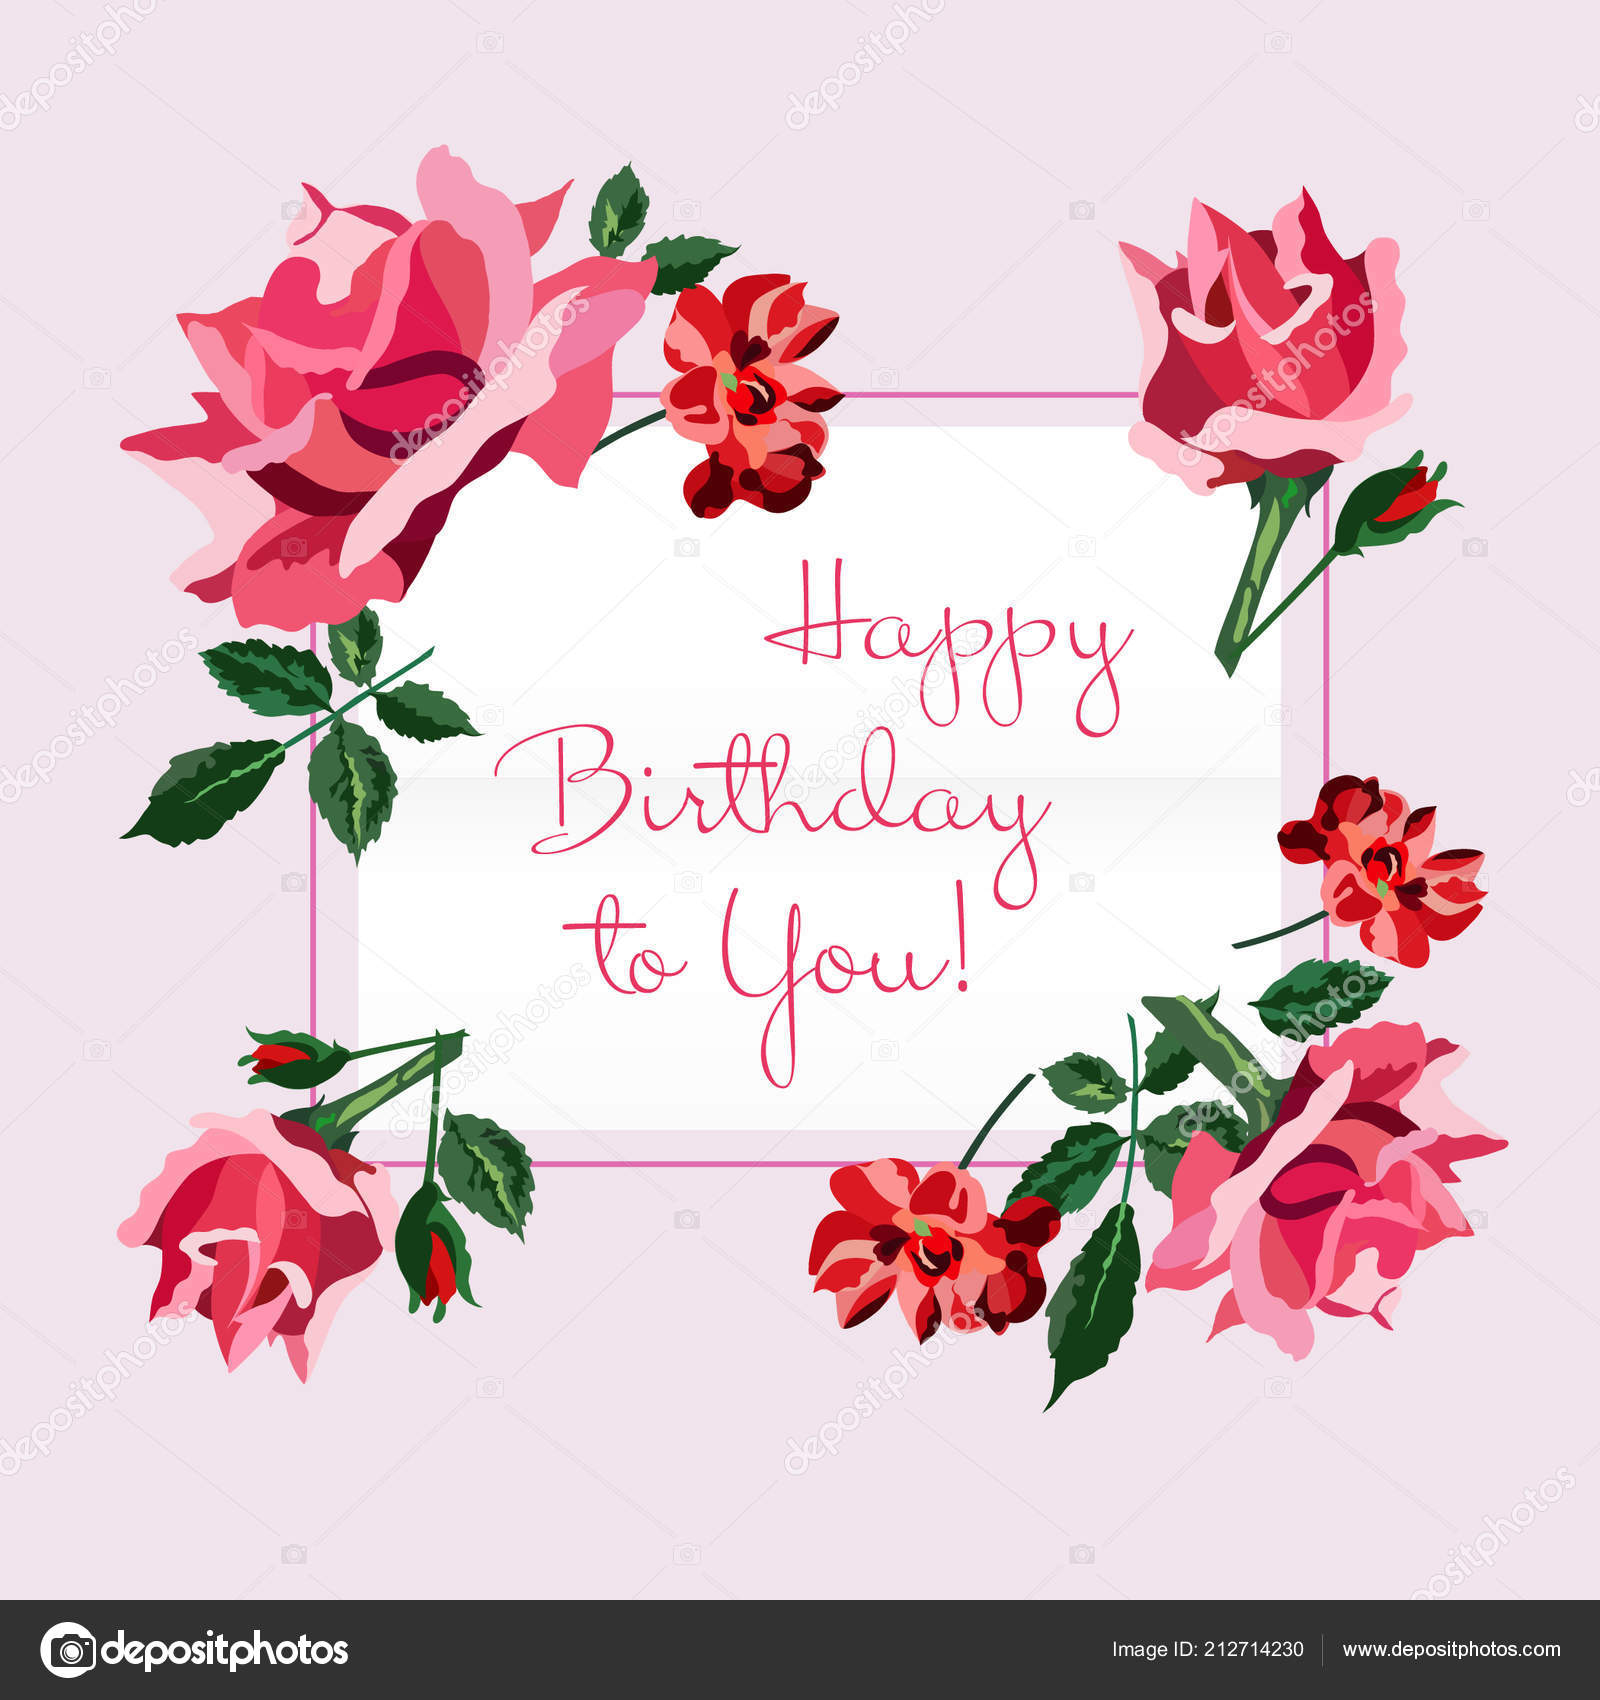 Happy birthday greeting card pink red roses rgeen leaves light happy birthday greeting card pink red roses rgeen leaves light stock vector m4hsunfo